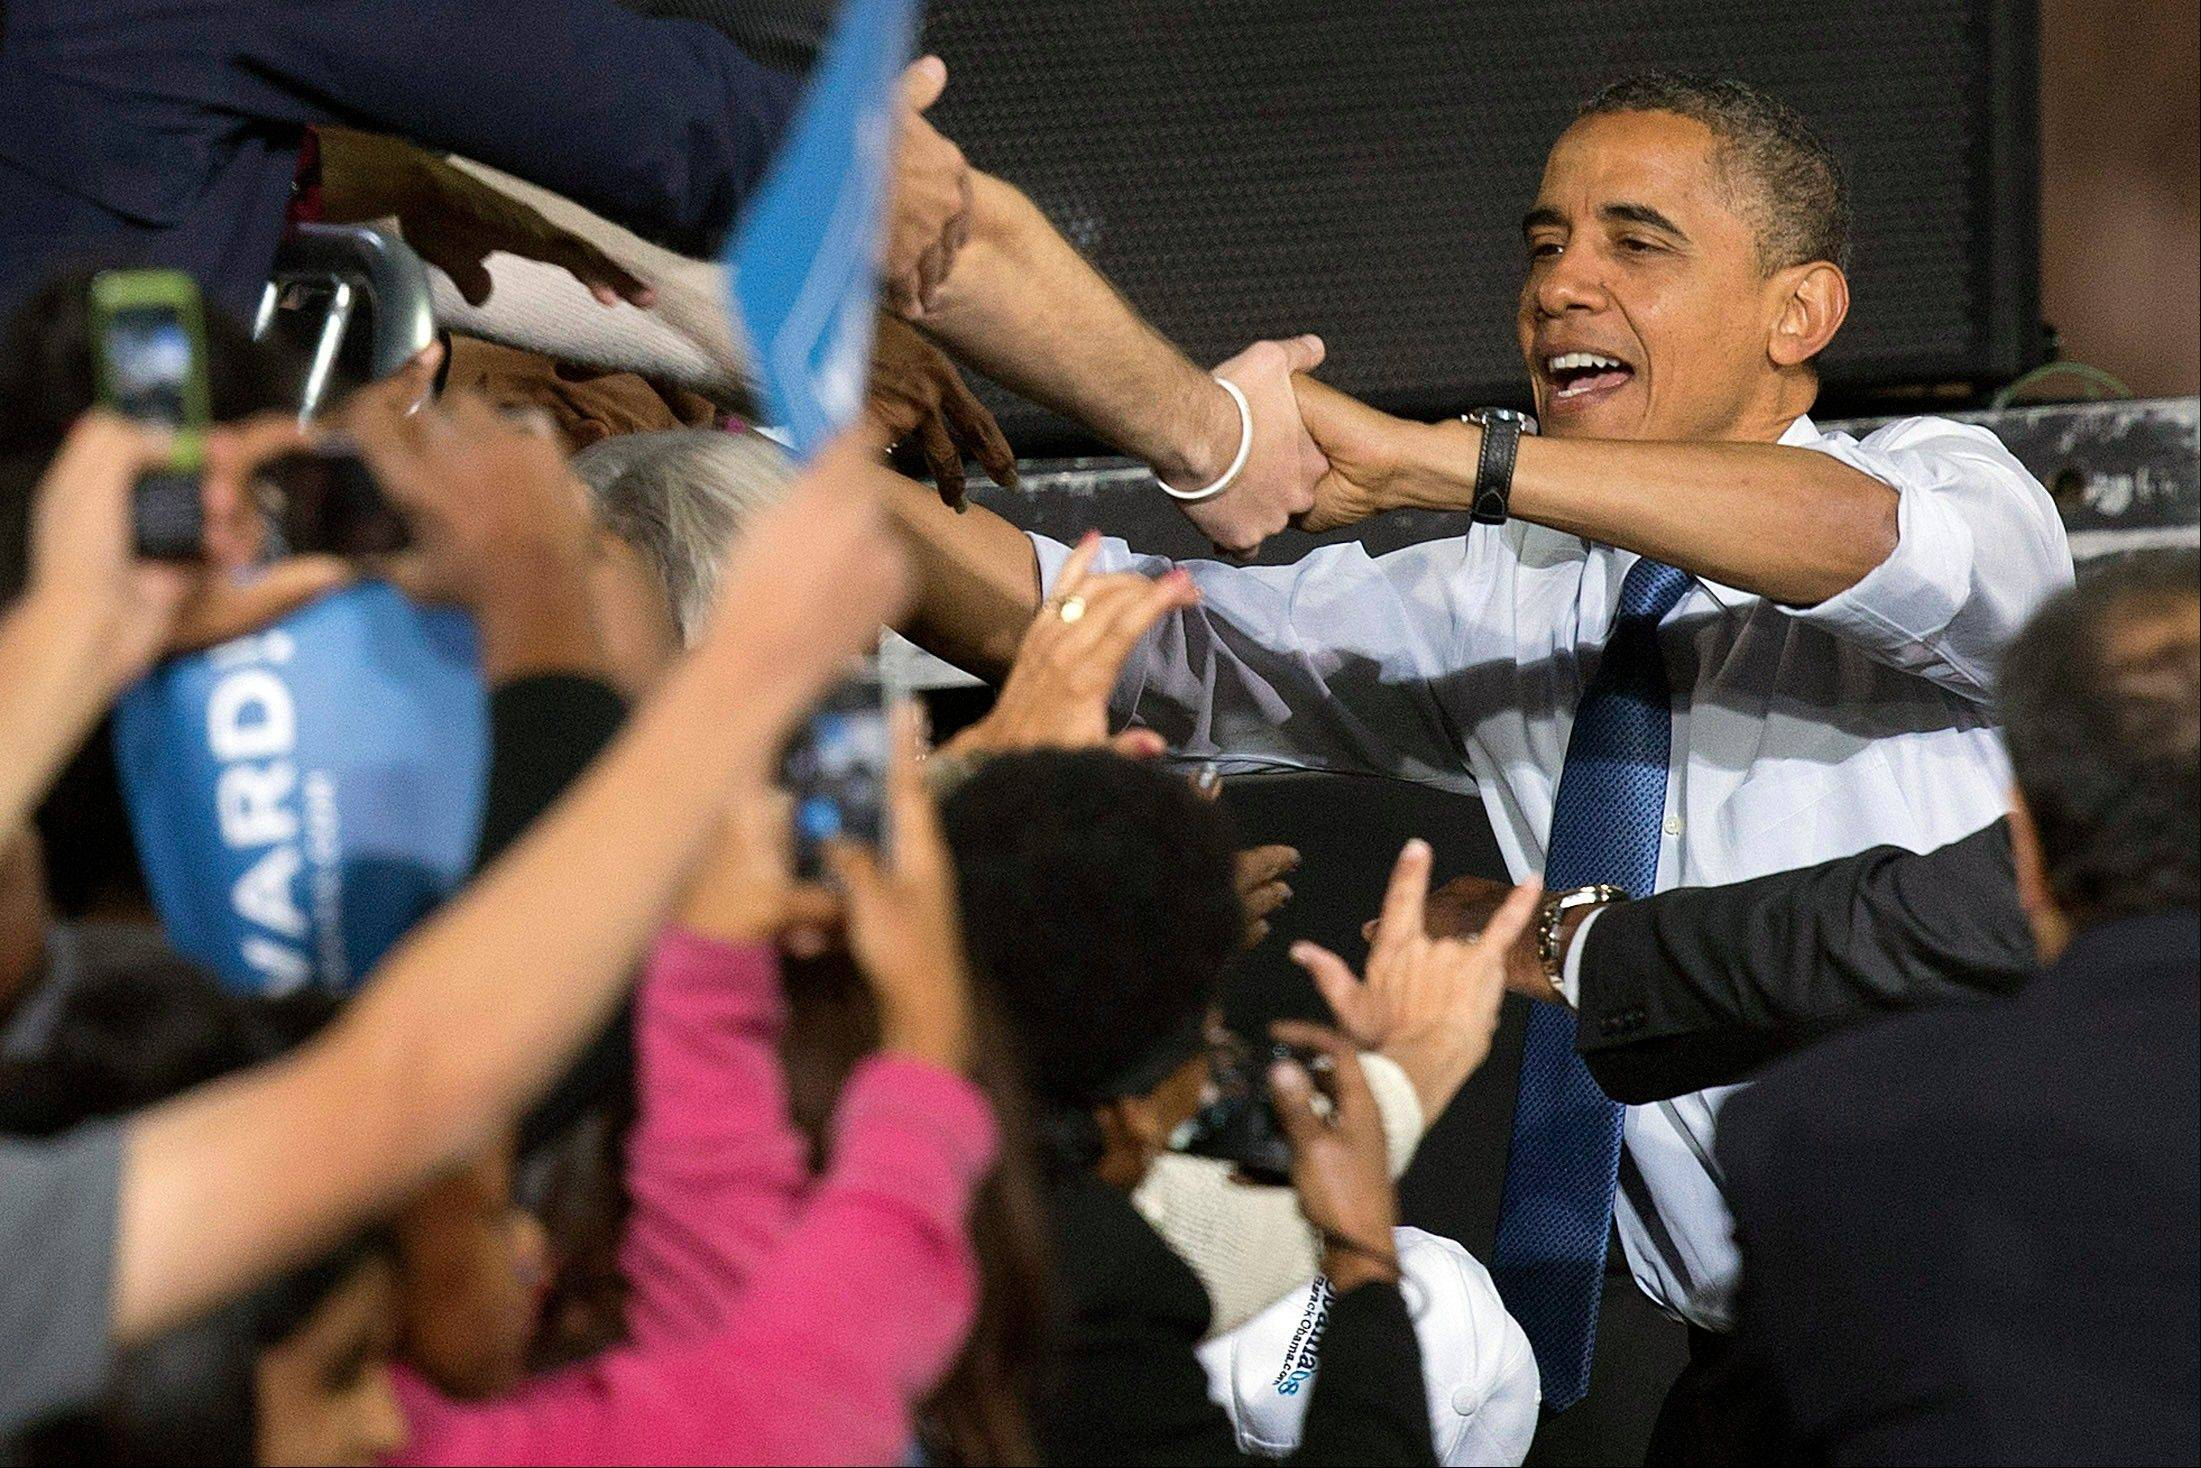 President Barack Obama greets supporters after speaking at a campaign rally, Wednesday, Oct. 24, 2012, in Las Vegas. The president is on a two-day tour of key battleground states that included stops in Iowa and Colorado on Wednesday and was scheduled to head to Florida, Virginia and Ohio on Thursday.